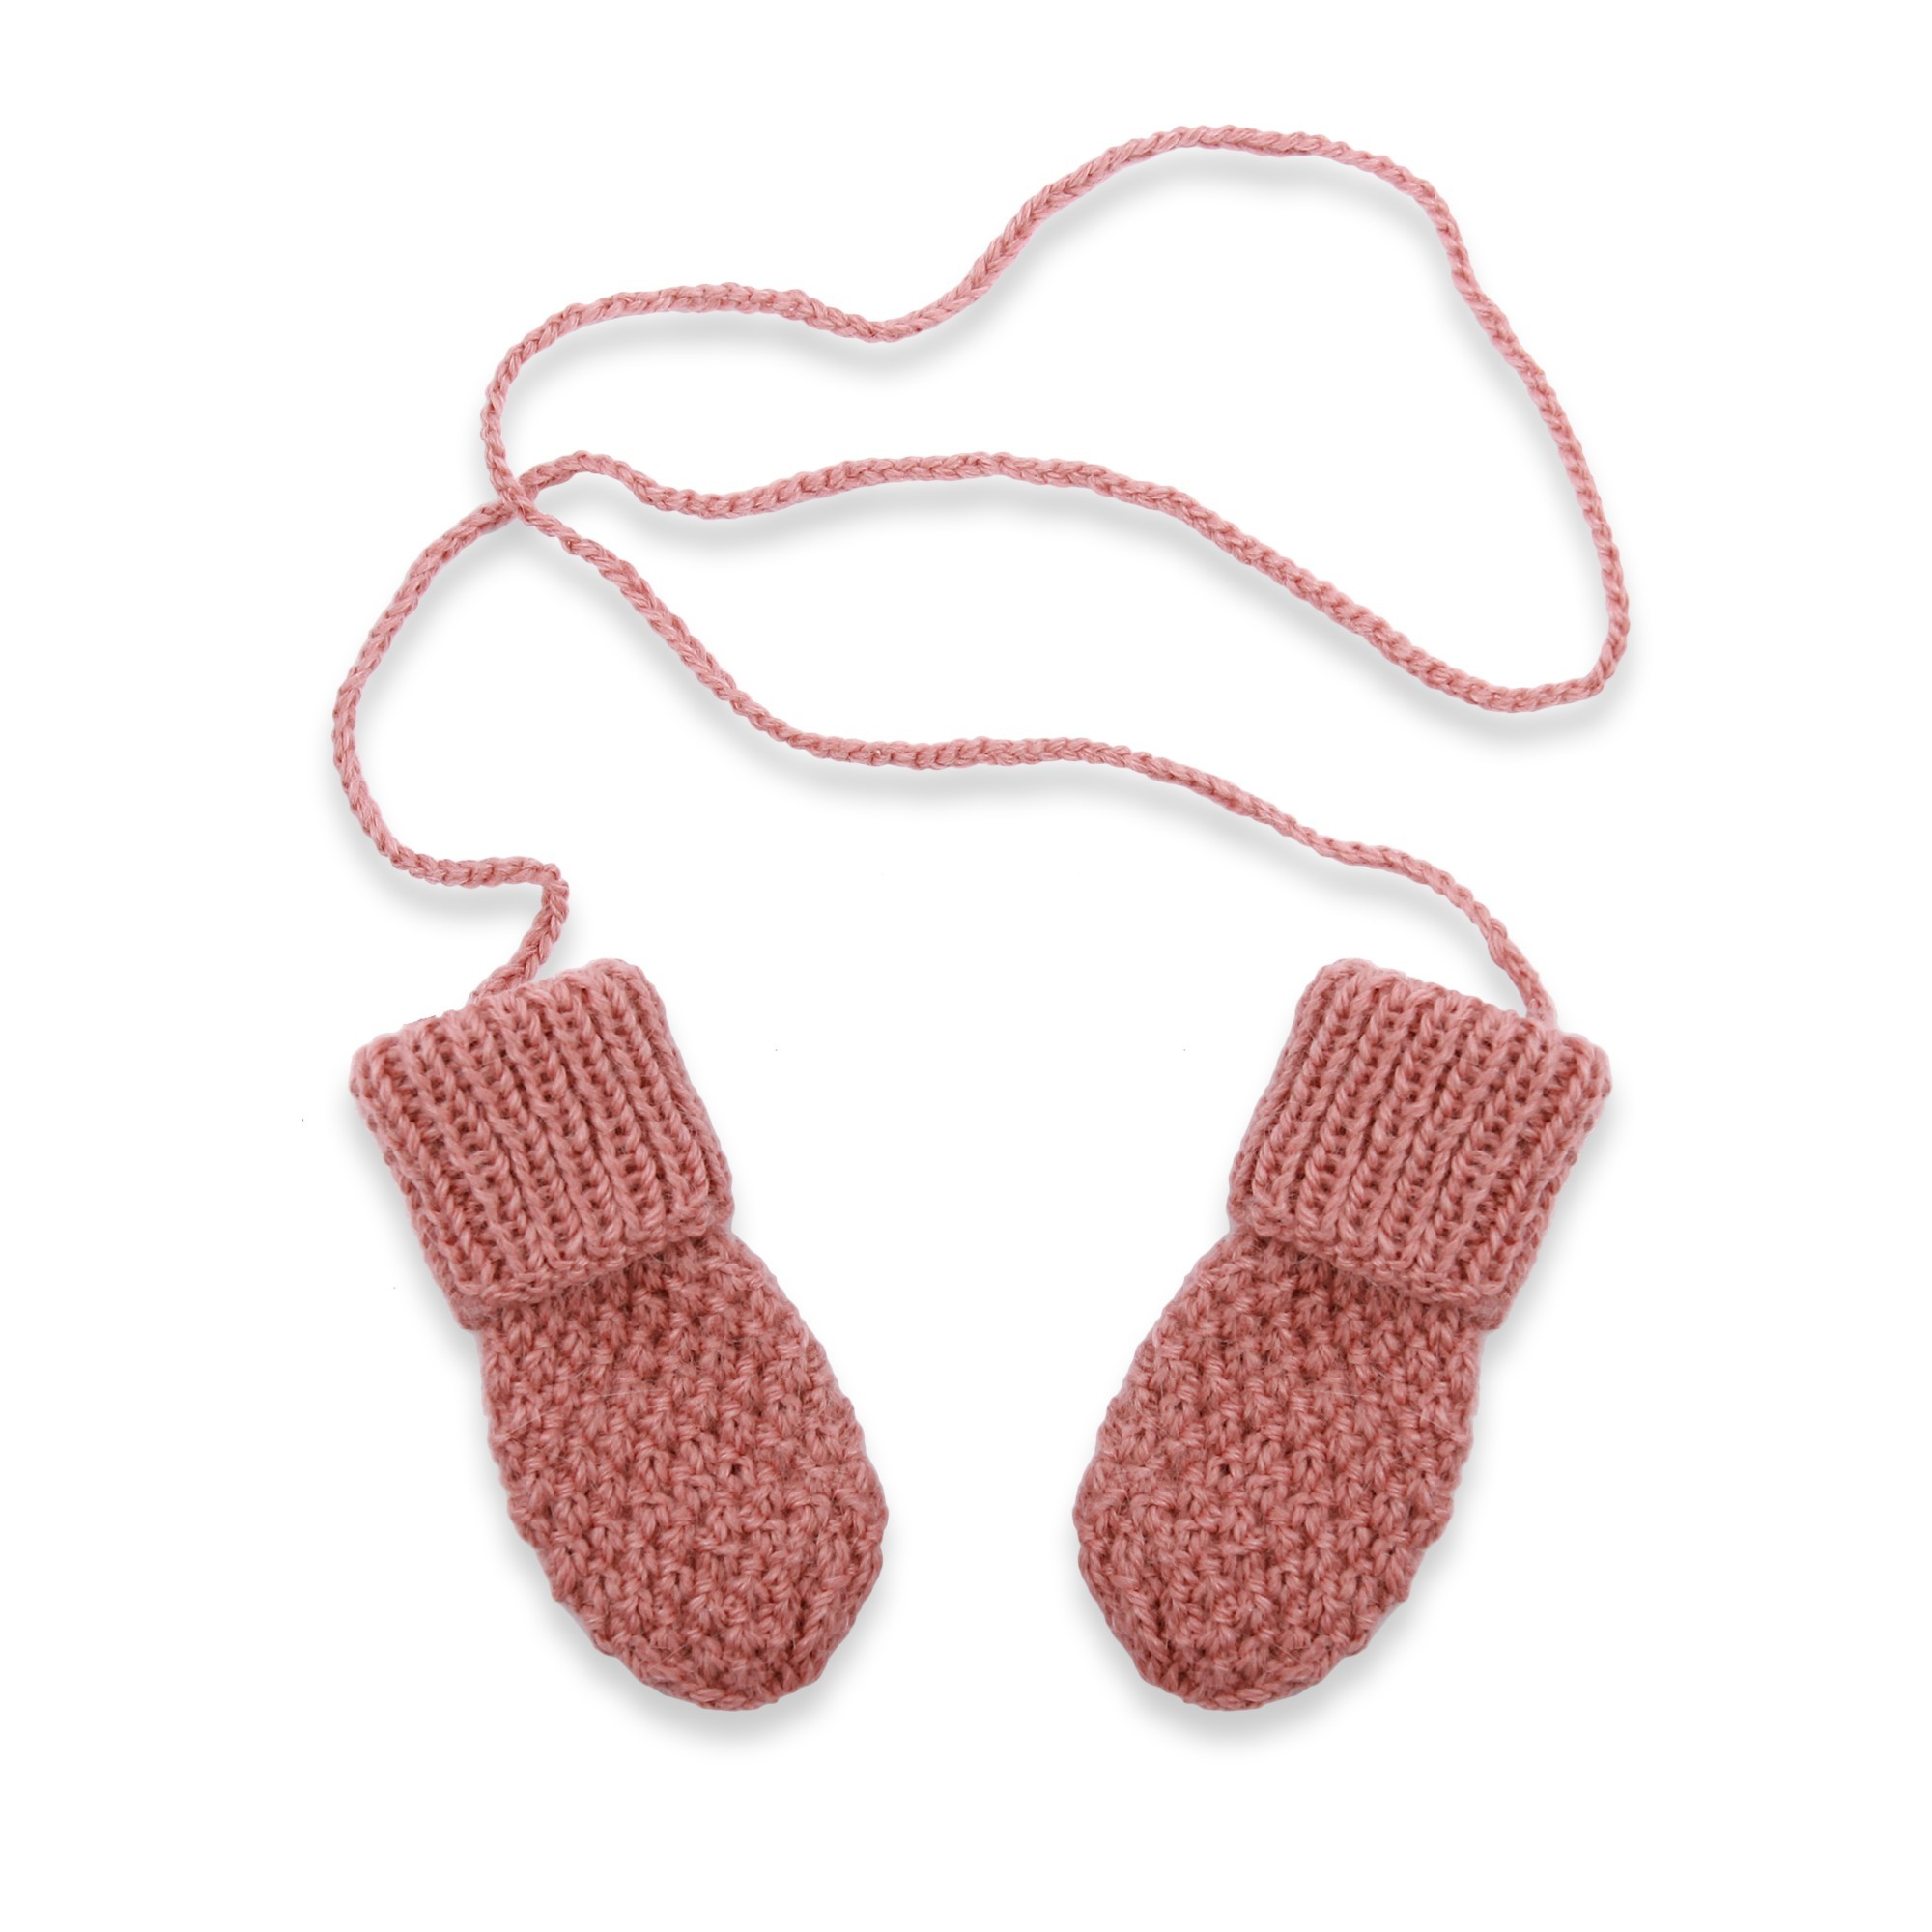 Baby mittens knitted in moss stitch made from wool and alpaca - Old pink